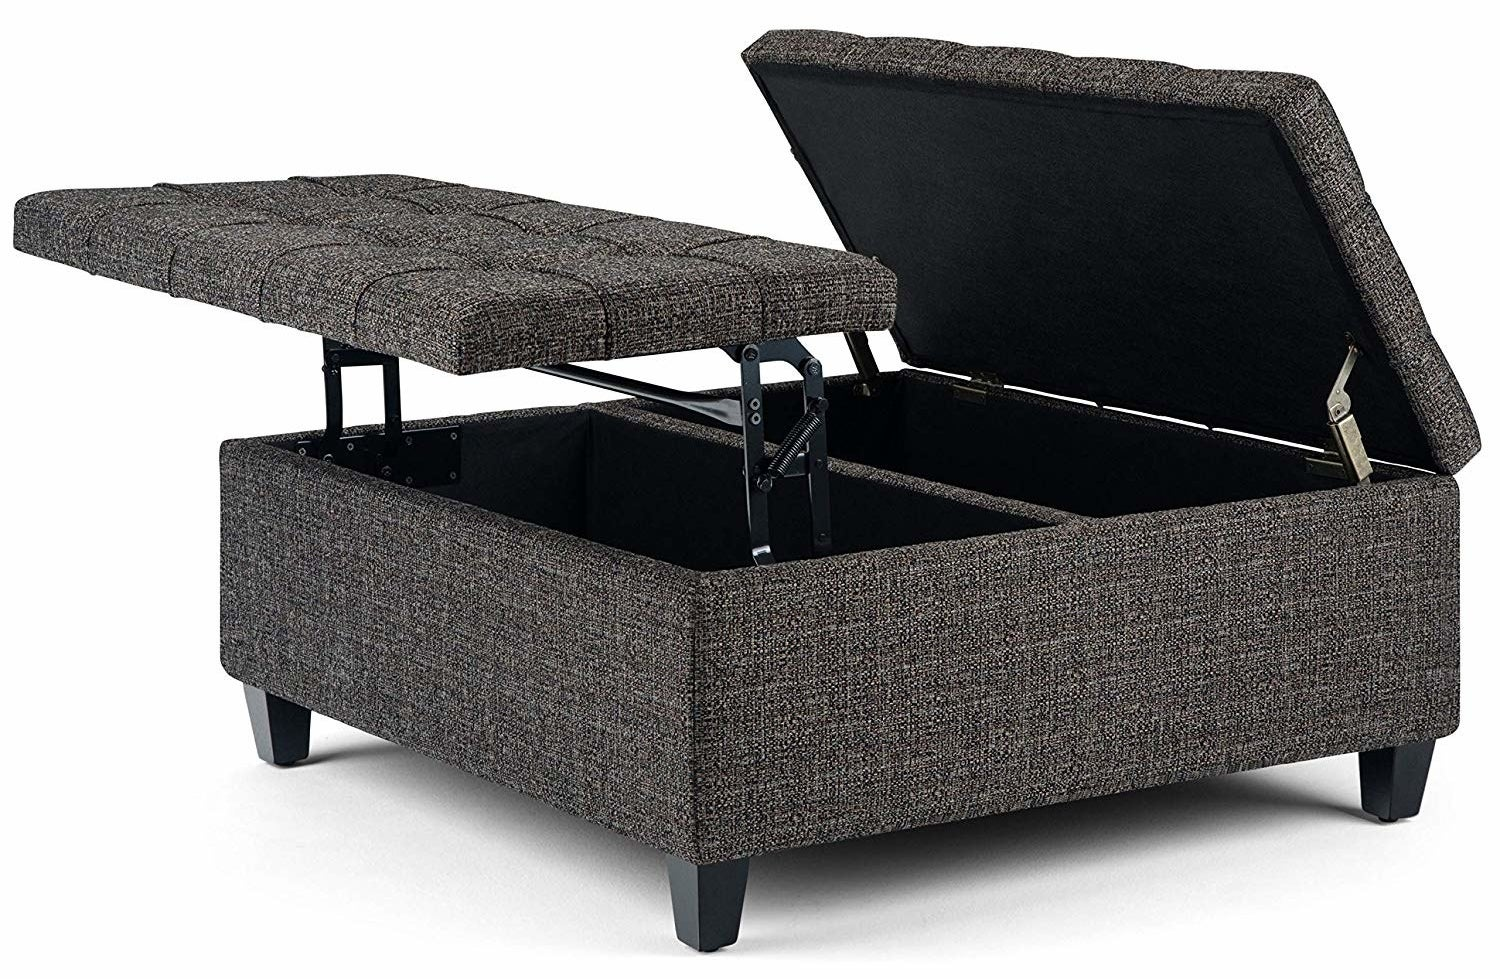 gray rectangular ottoman with lids that raise up to reveal storage